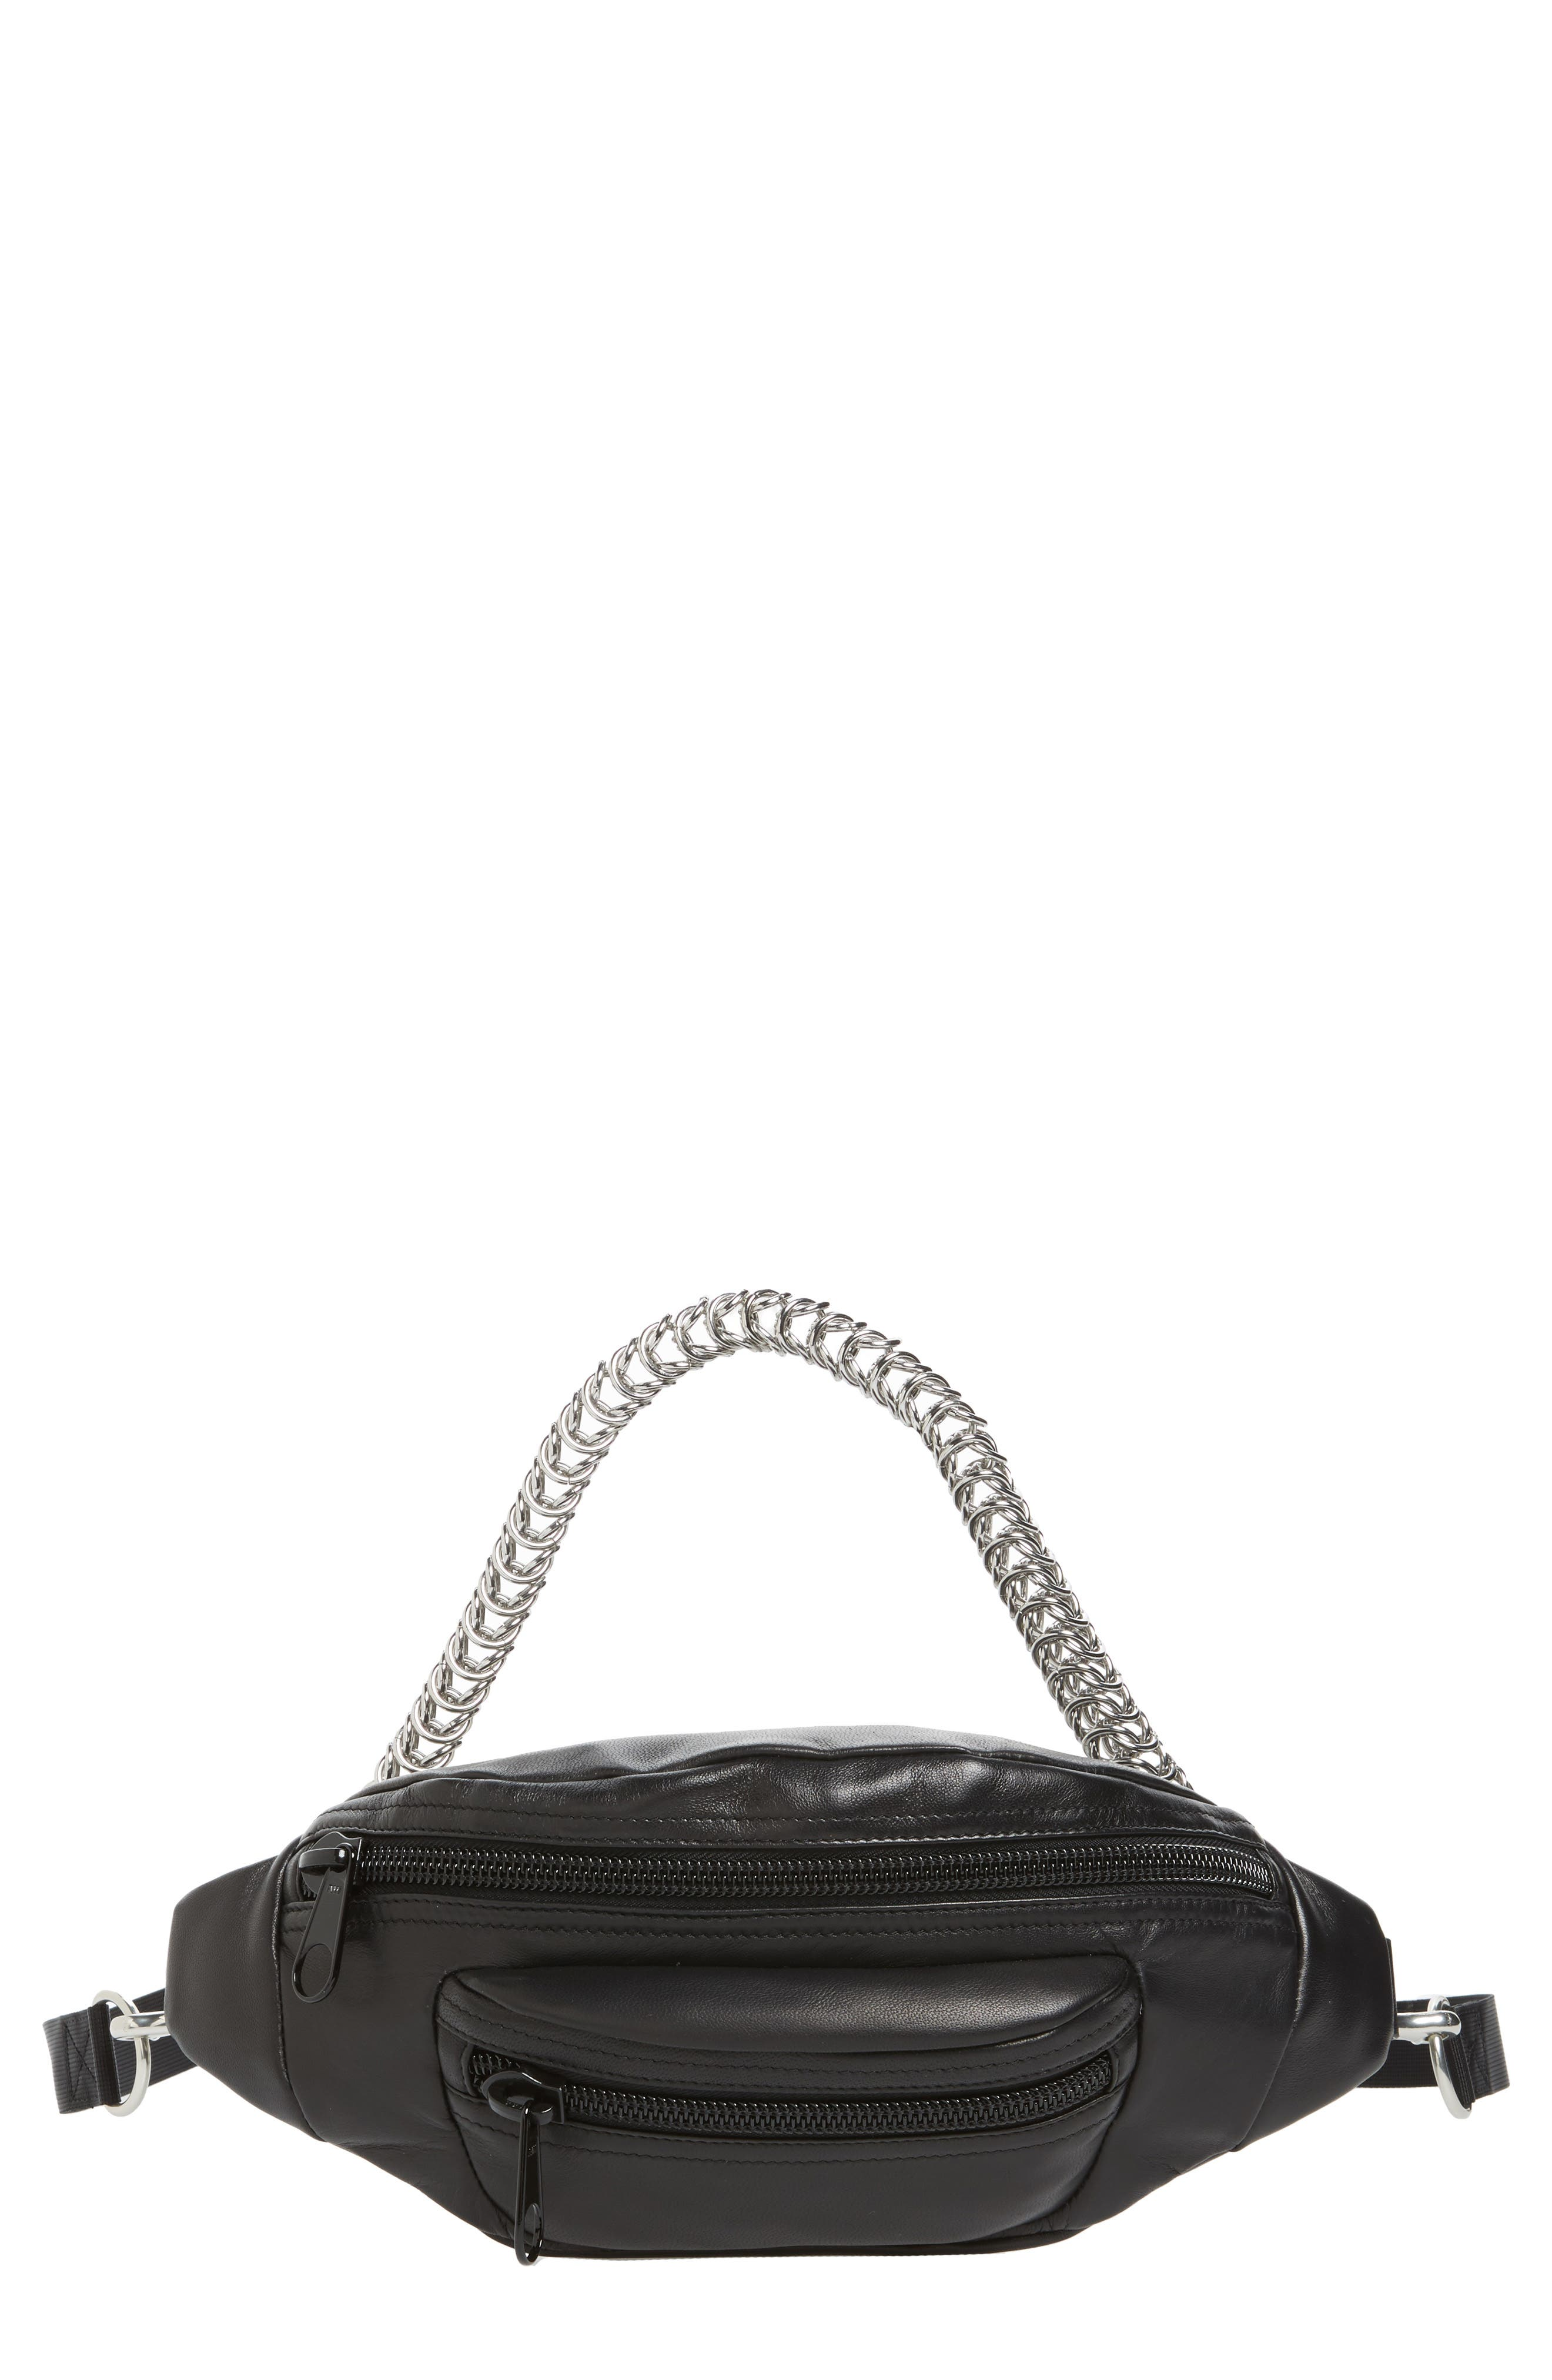 Alexander Wang Primary Box Chain Leather Fanny Pack